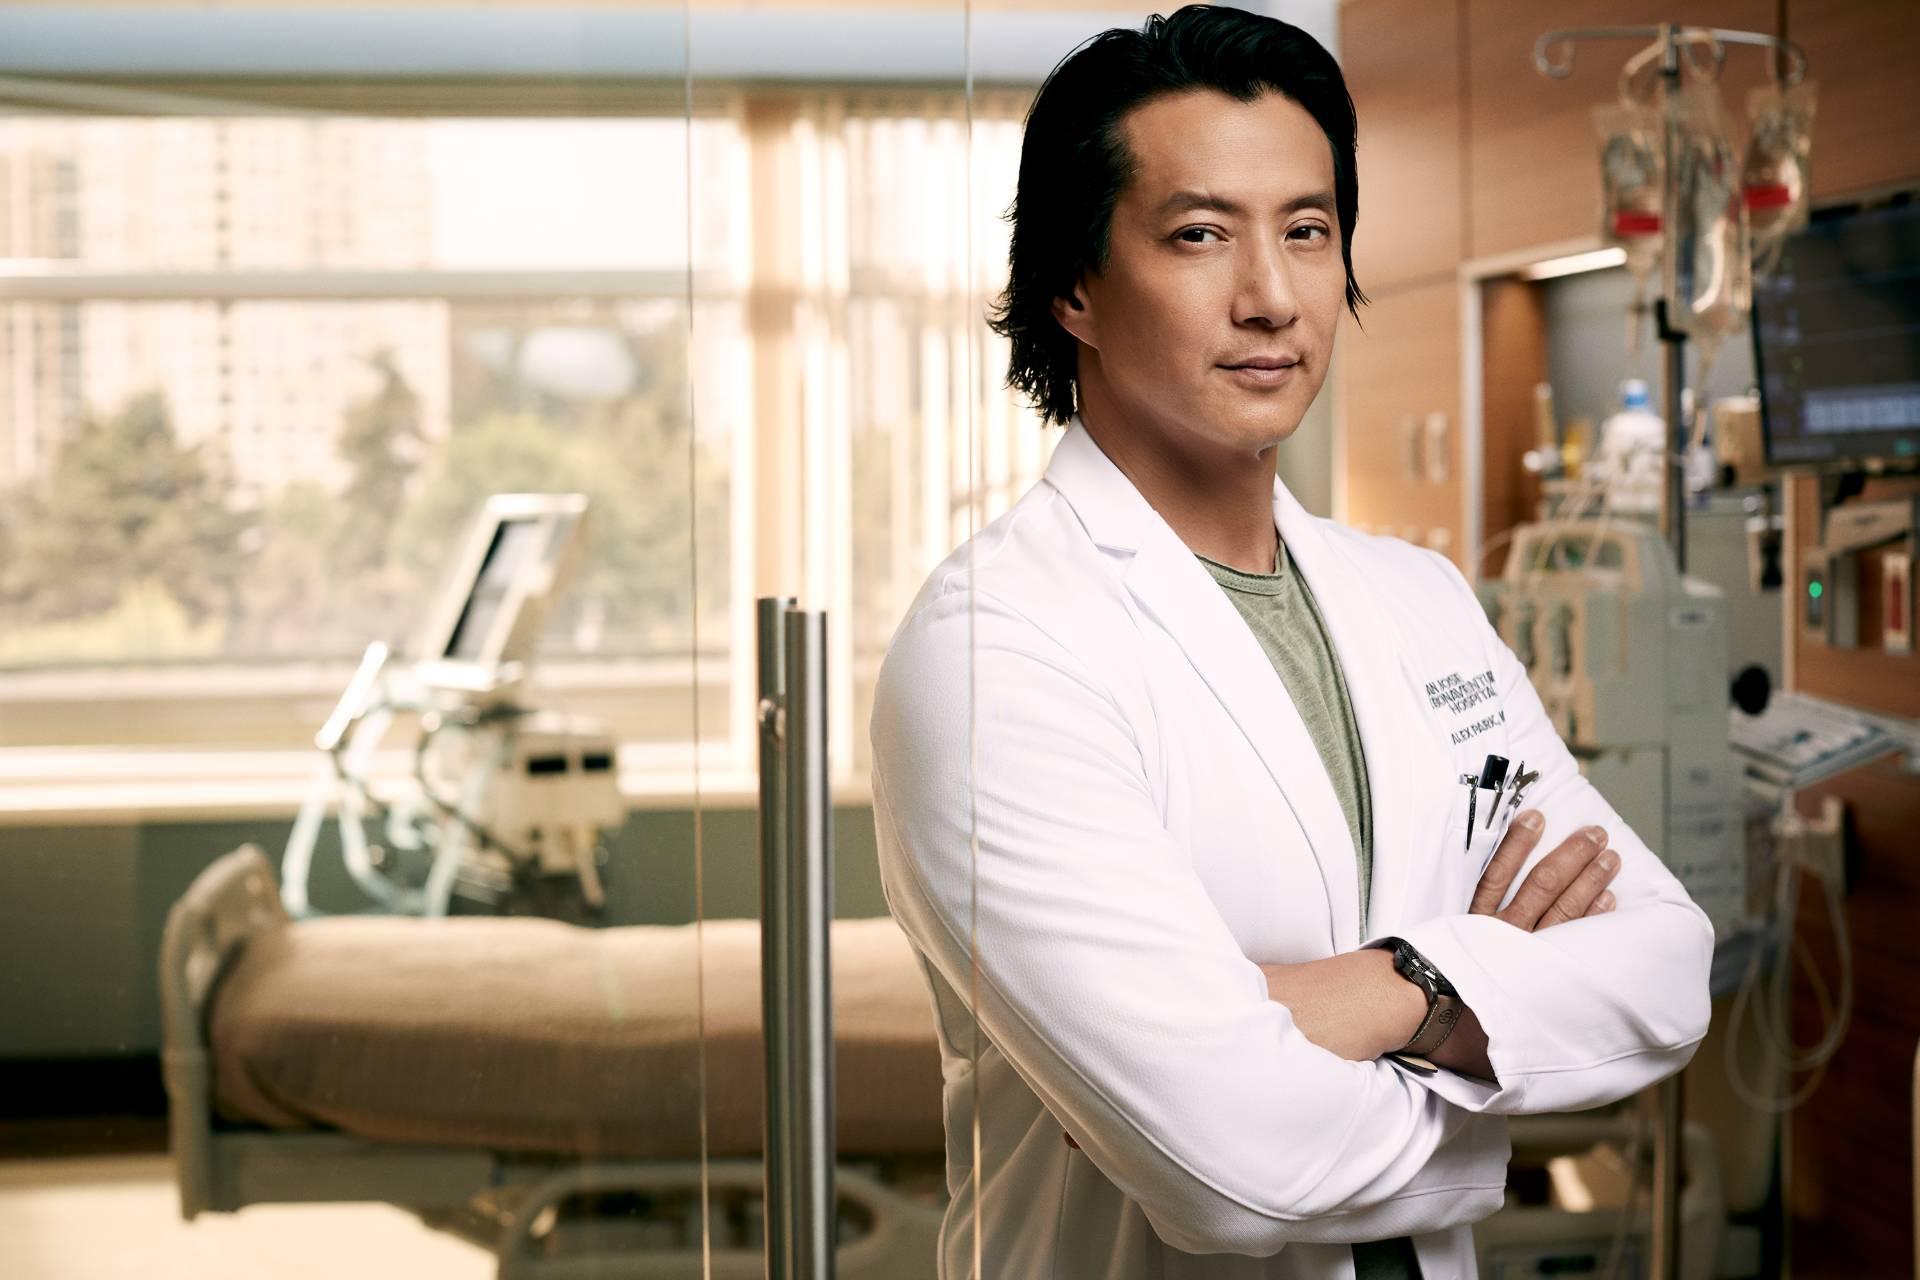 Dr Park The Good Doctor